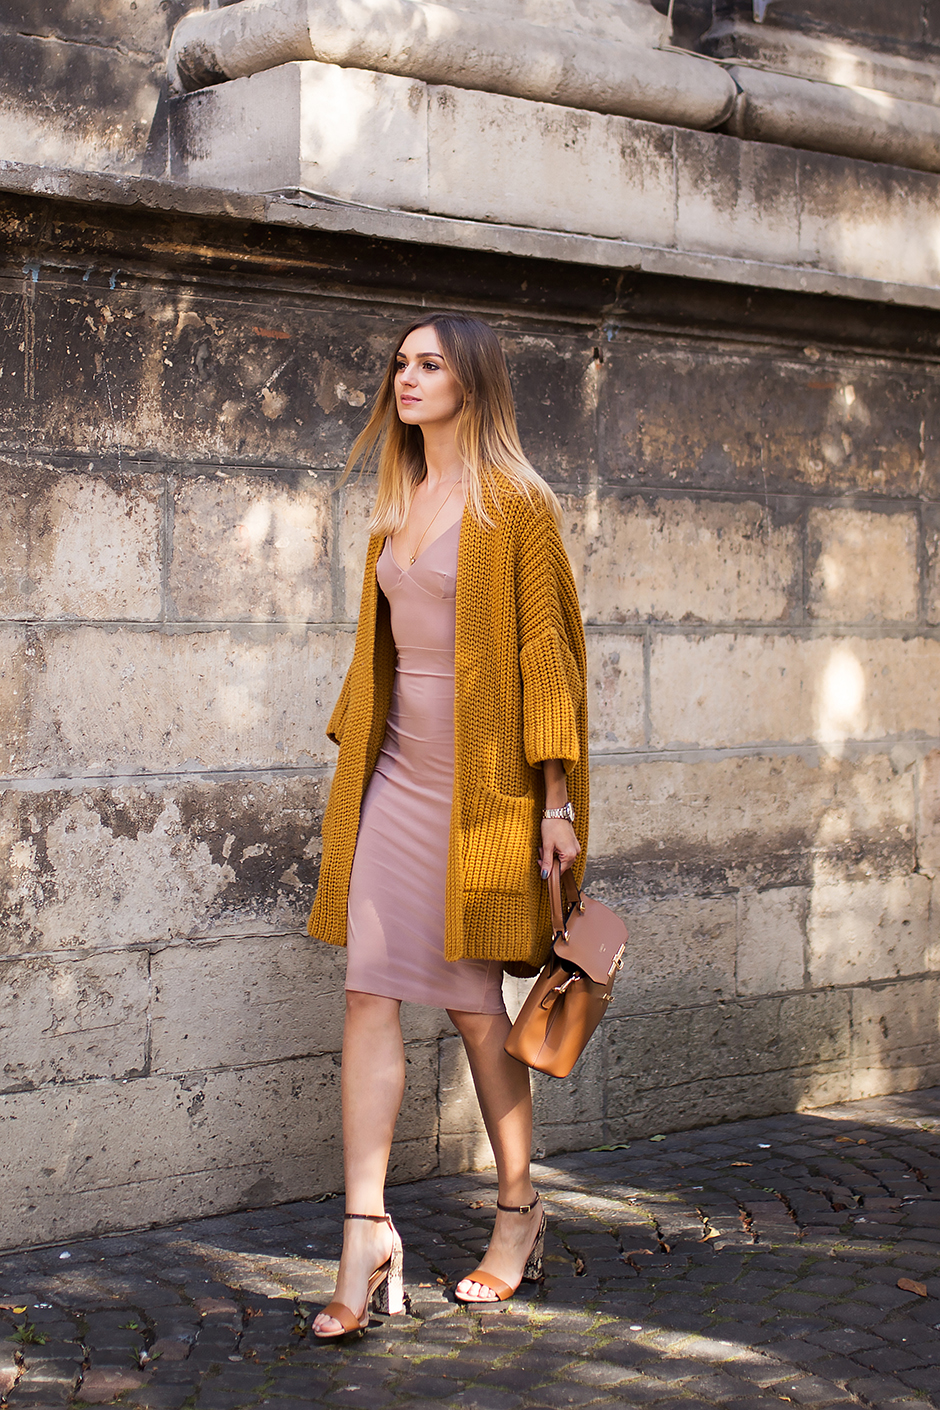 eea31a43b9 how-to-wear-yellow-chunky-cardigan-outfit-street- mustard-yellow-outfit -street-style